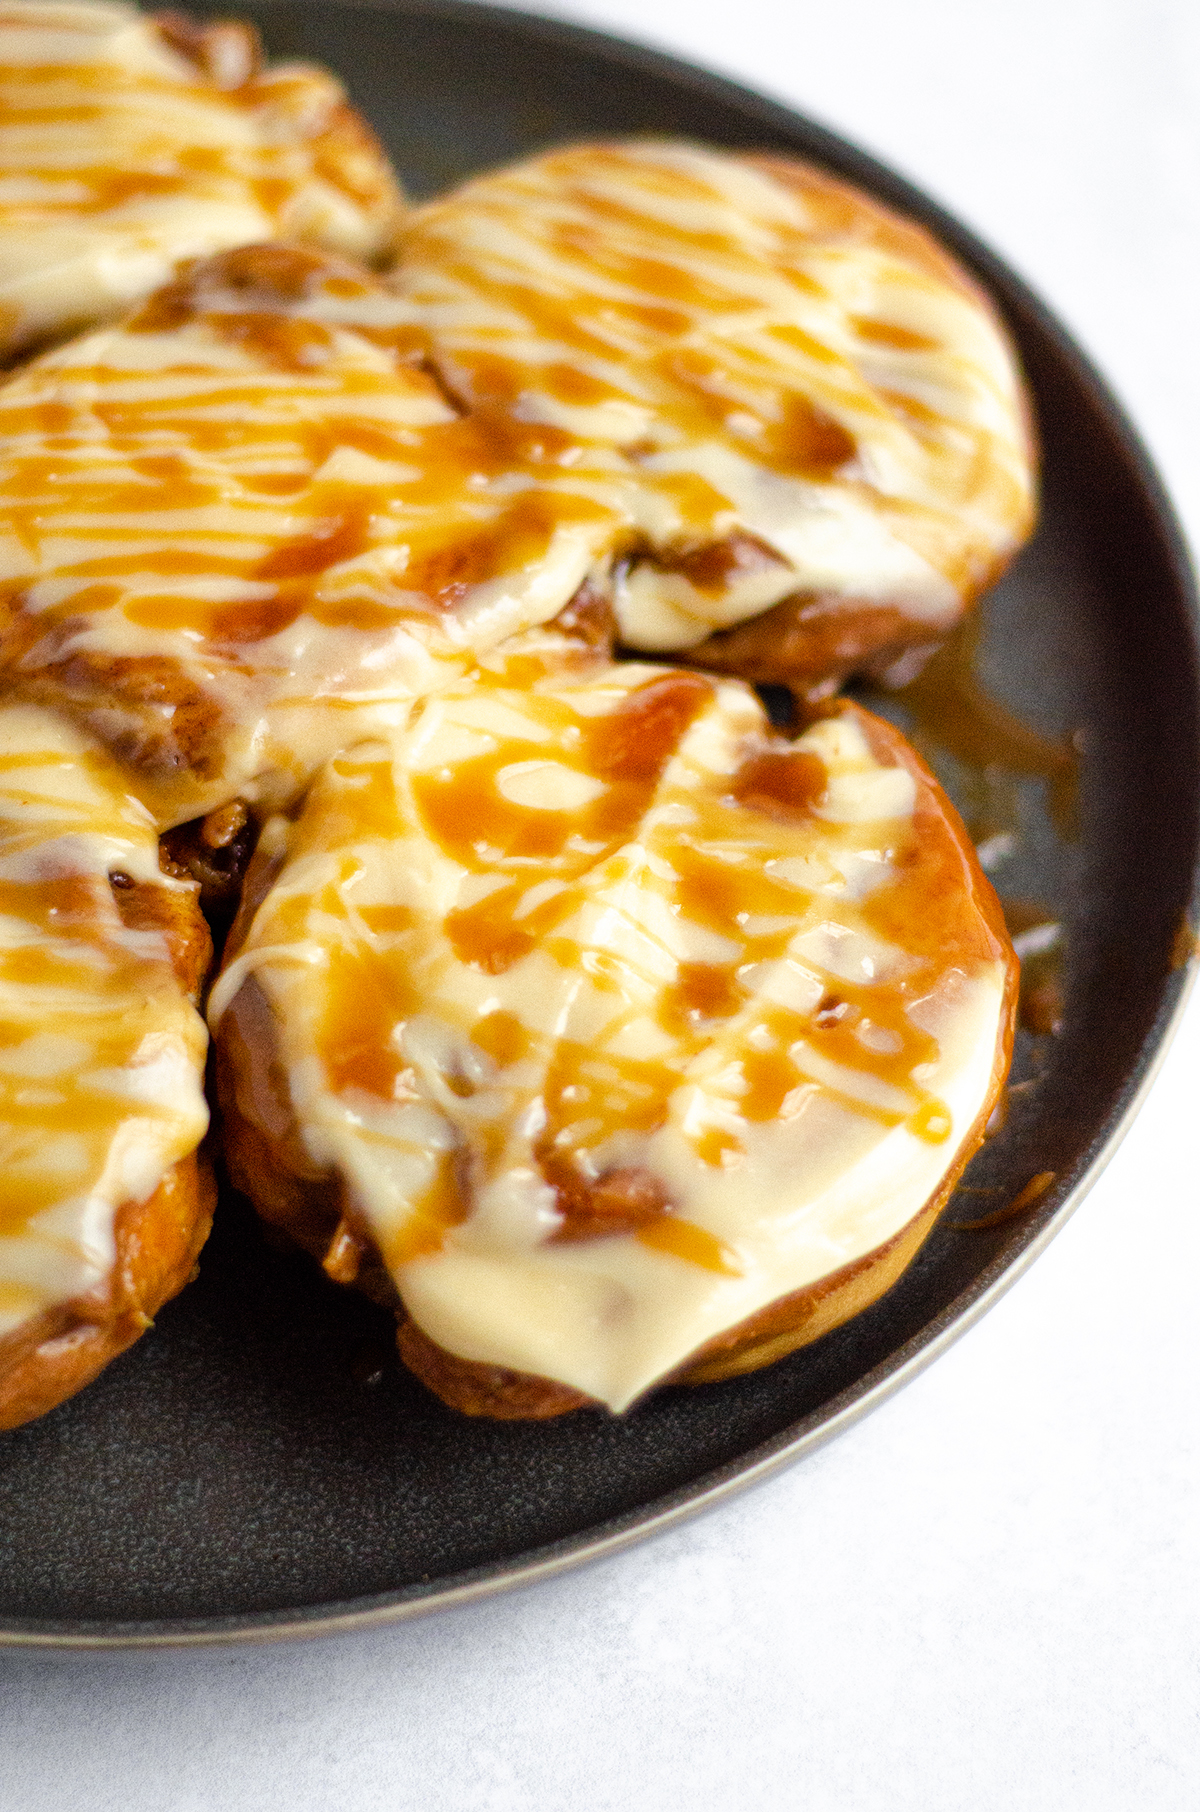 caramel rolls with caramel cream cheese frosting on a plate